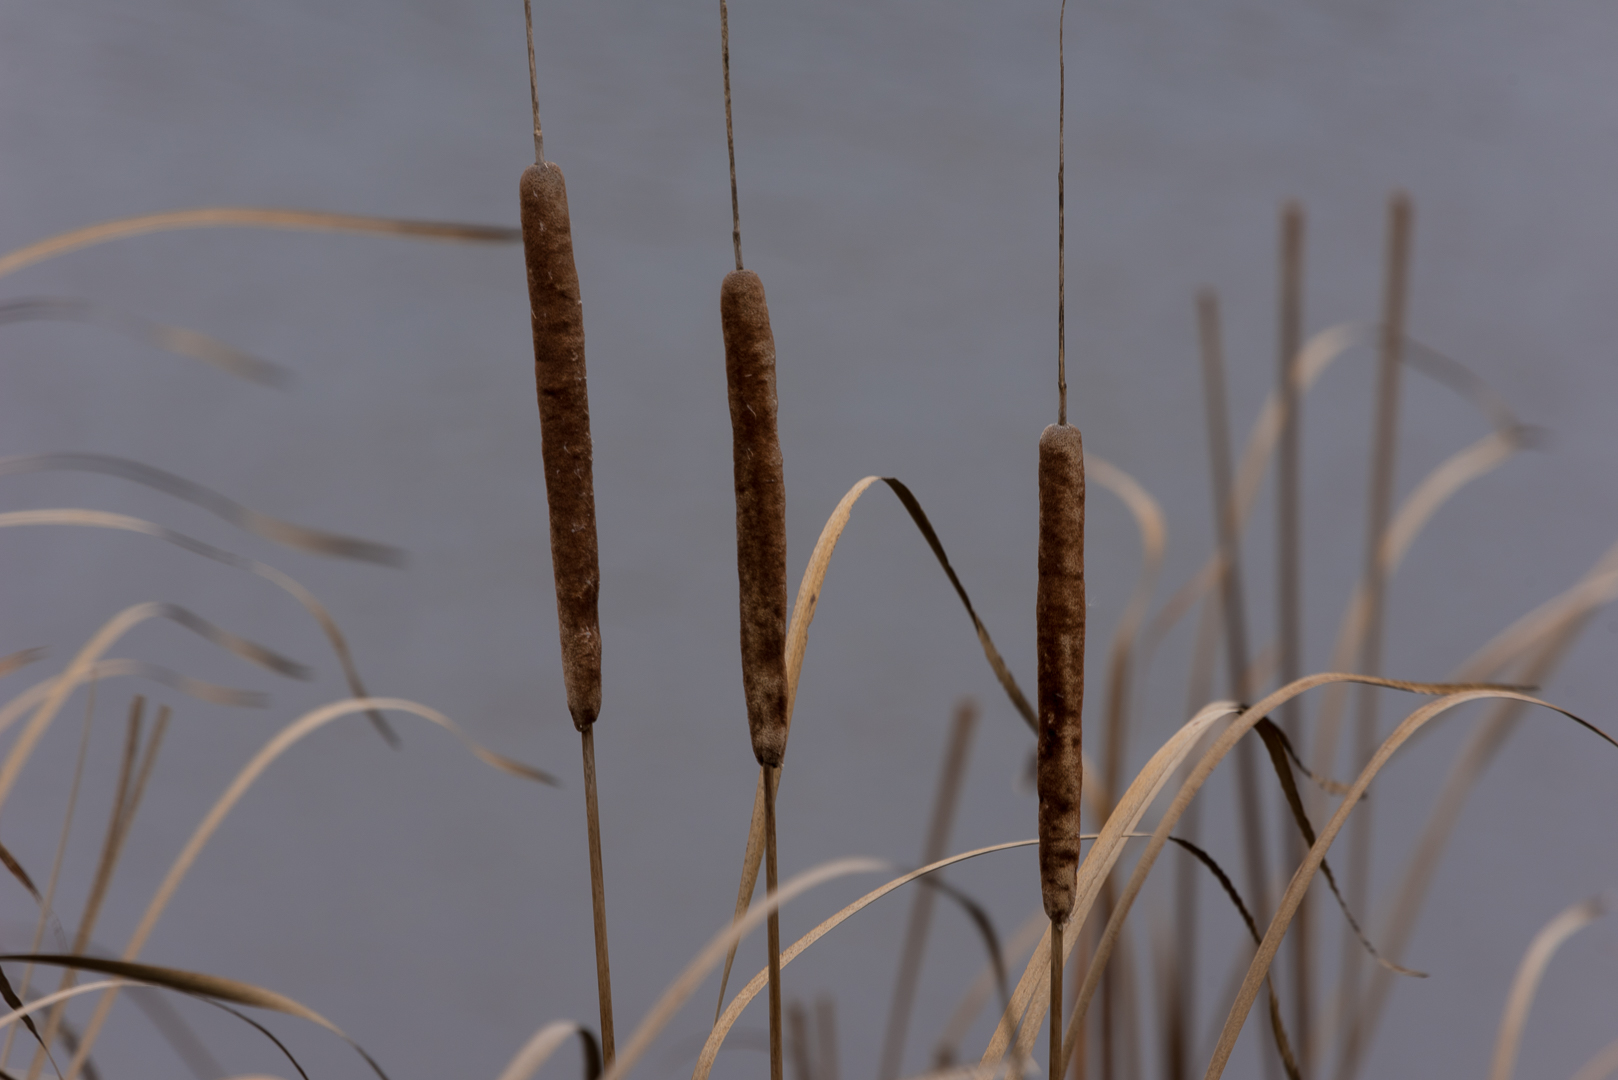 Cattails - Digital (Shallow Depth of Field) - Name Withheld Per Request